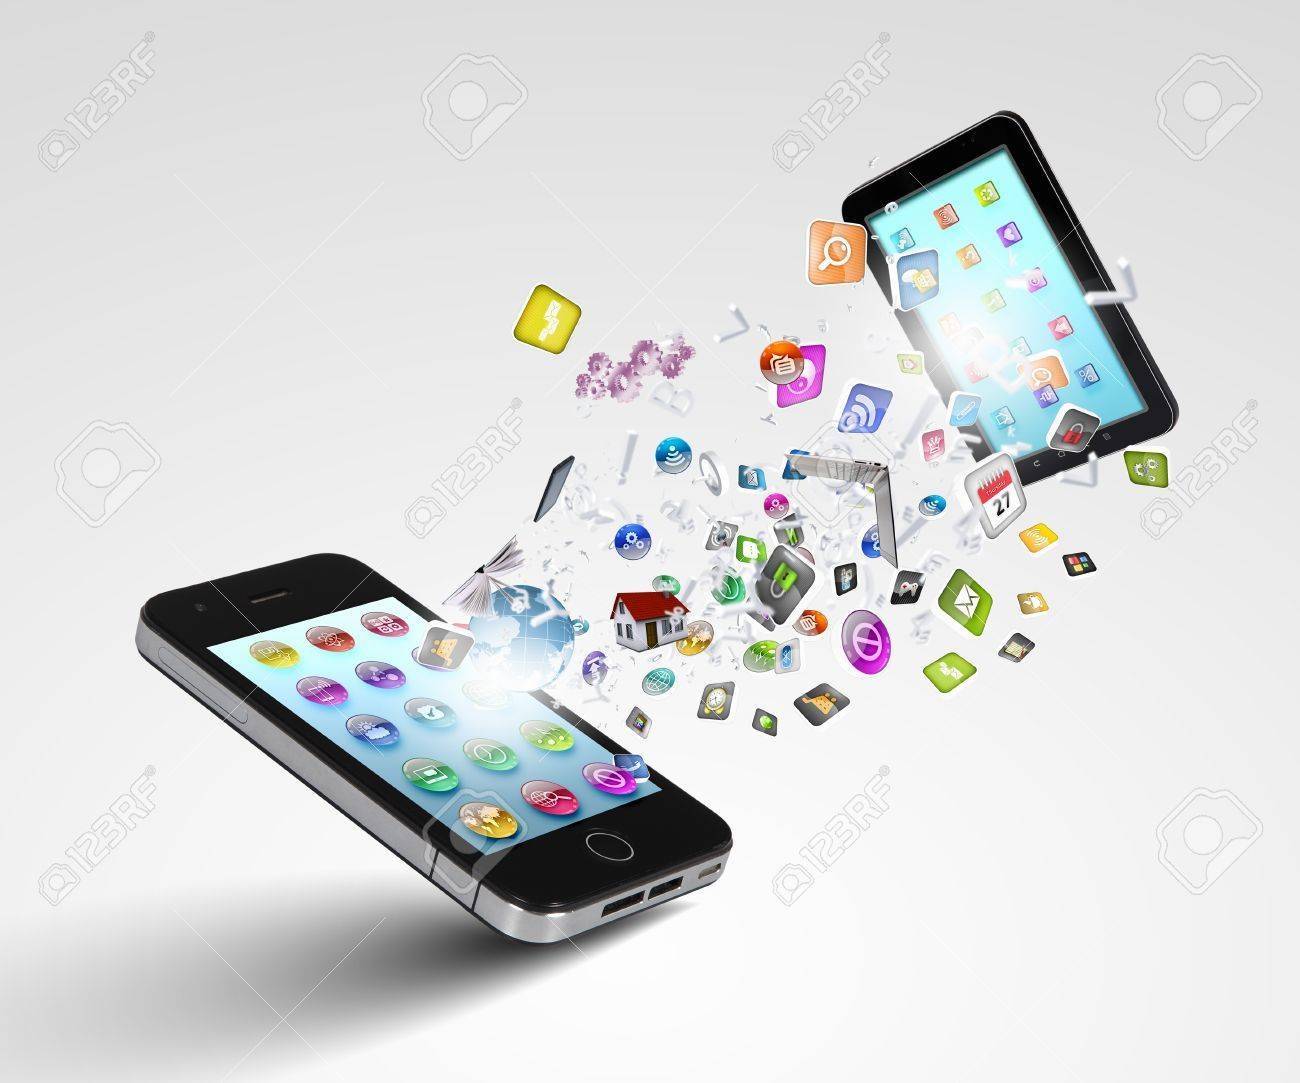 Modern communication technology illustration with mobile phone and high tech background Stock Illustration - 16896895